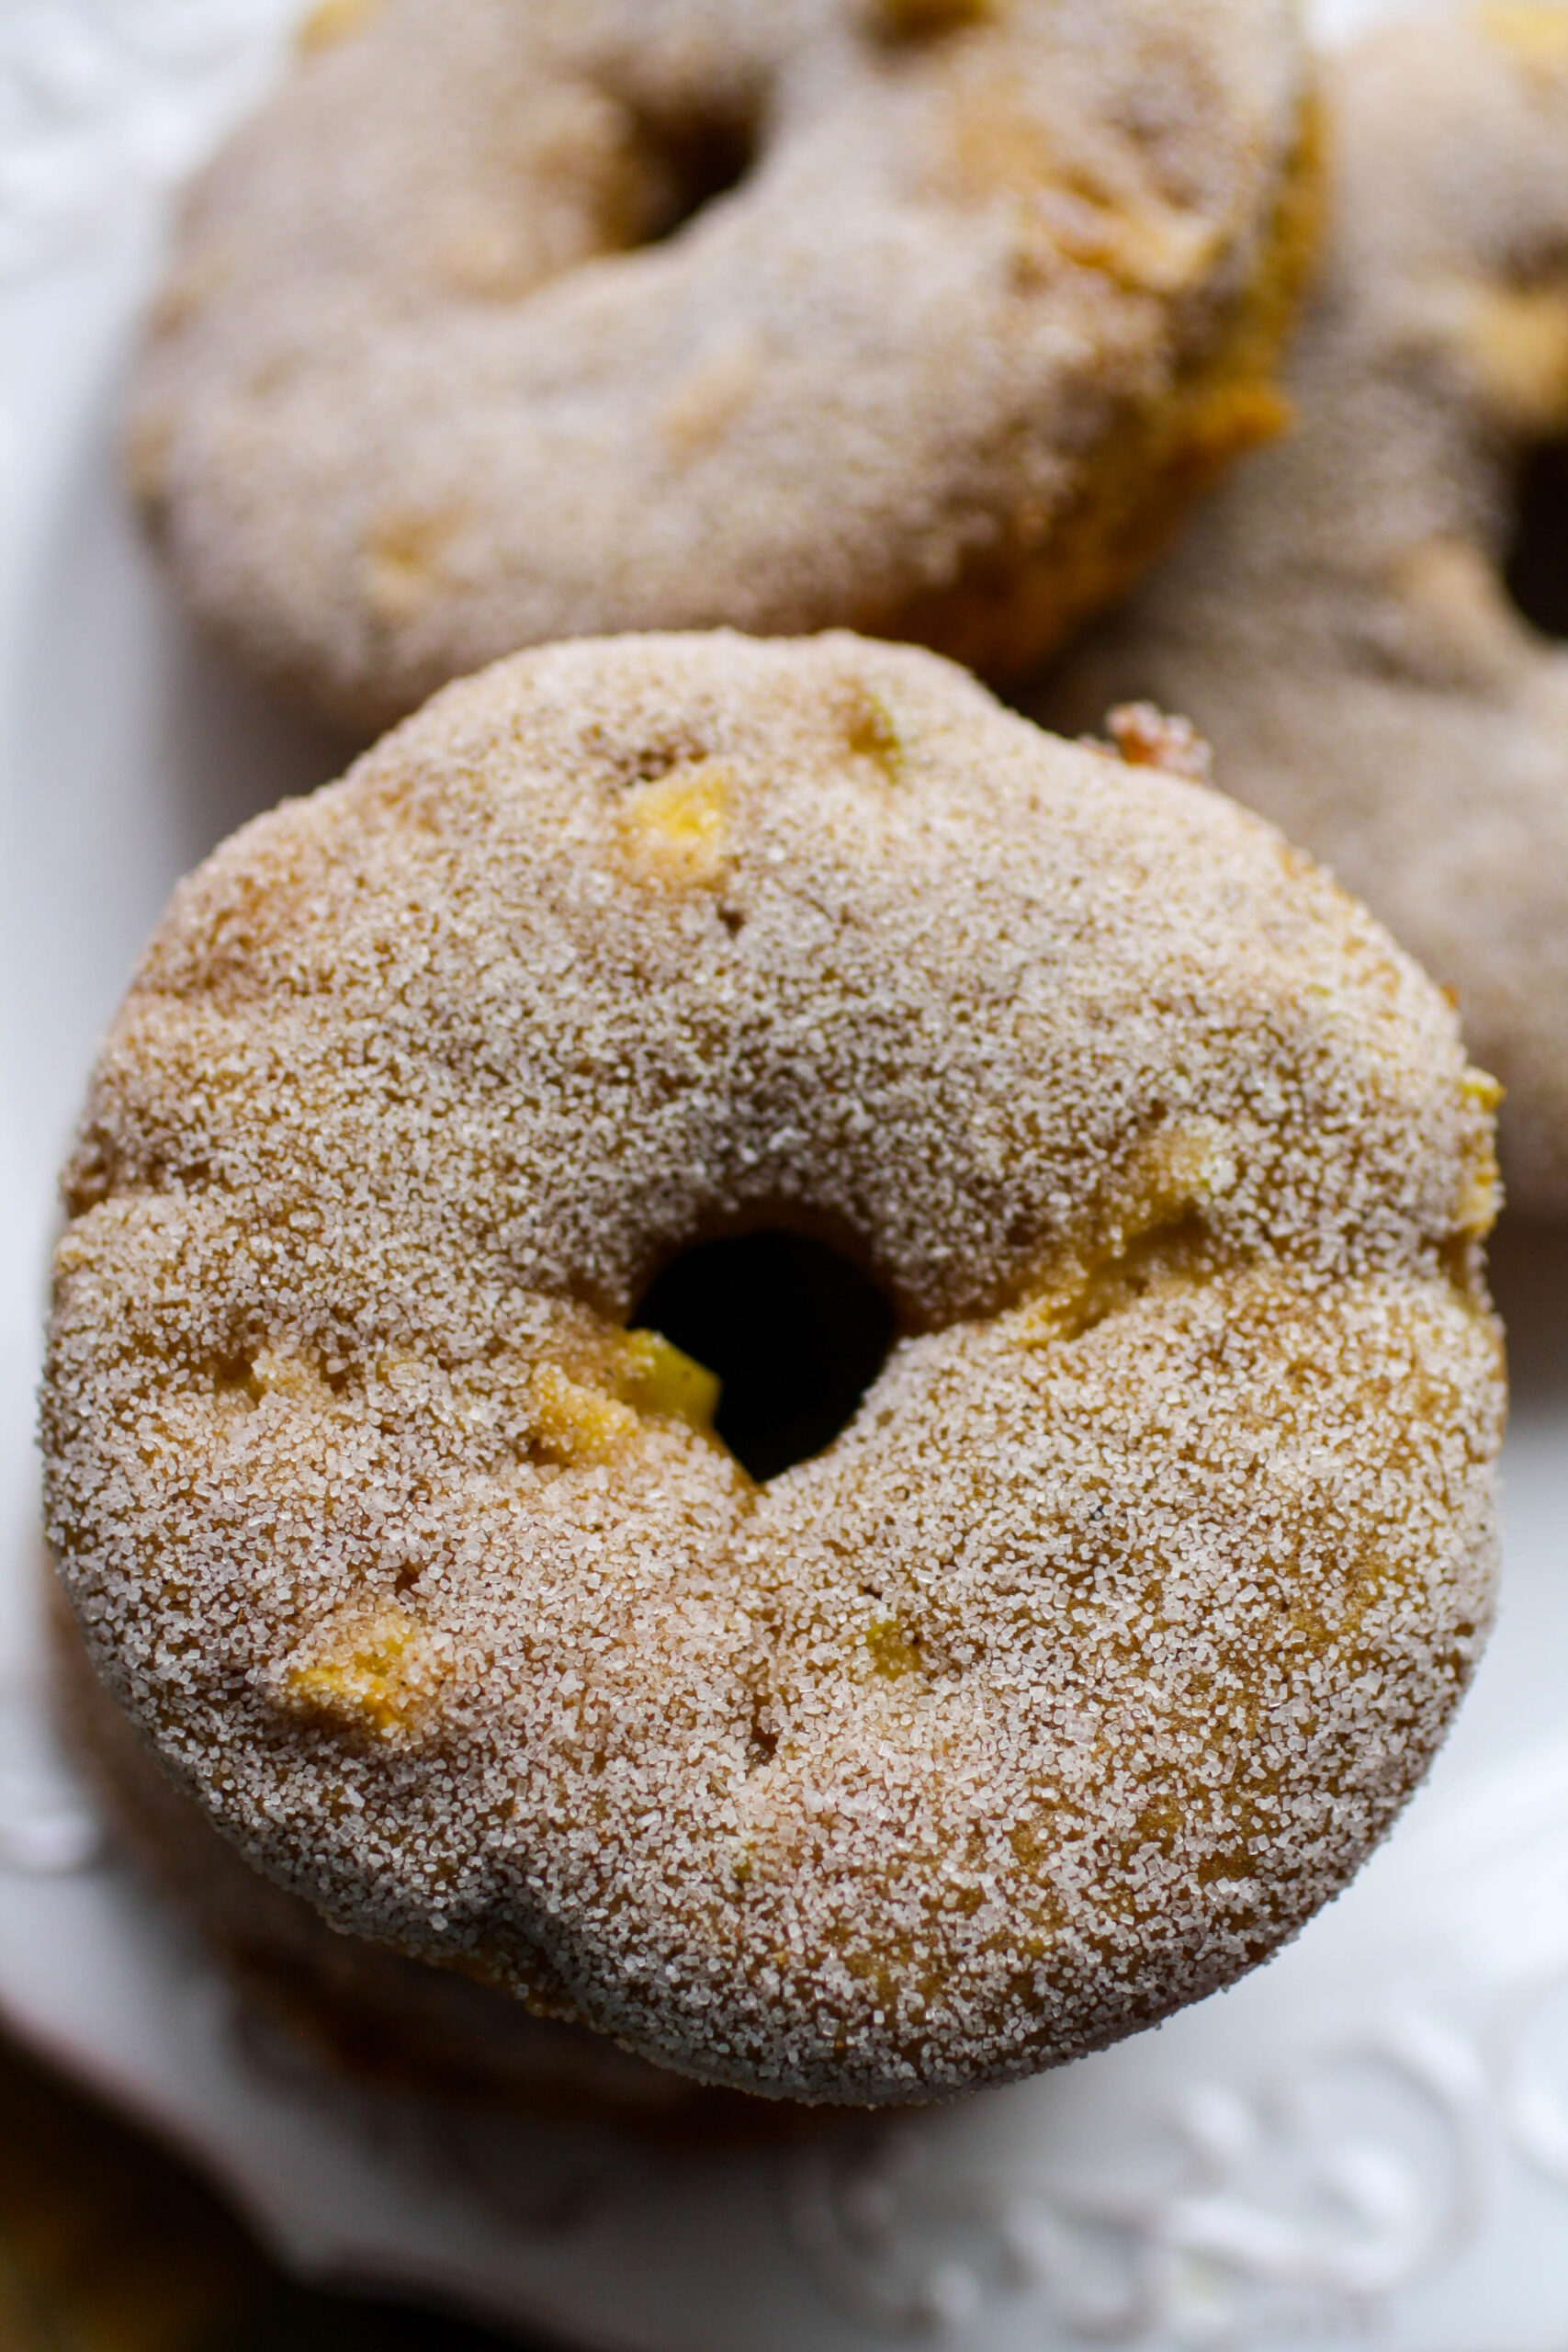 Baked Apple Cinnamon Donuts are great whether or not they're coated in cinnamon-sugar!